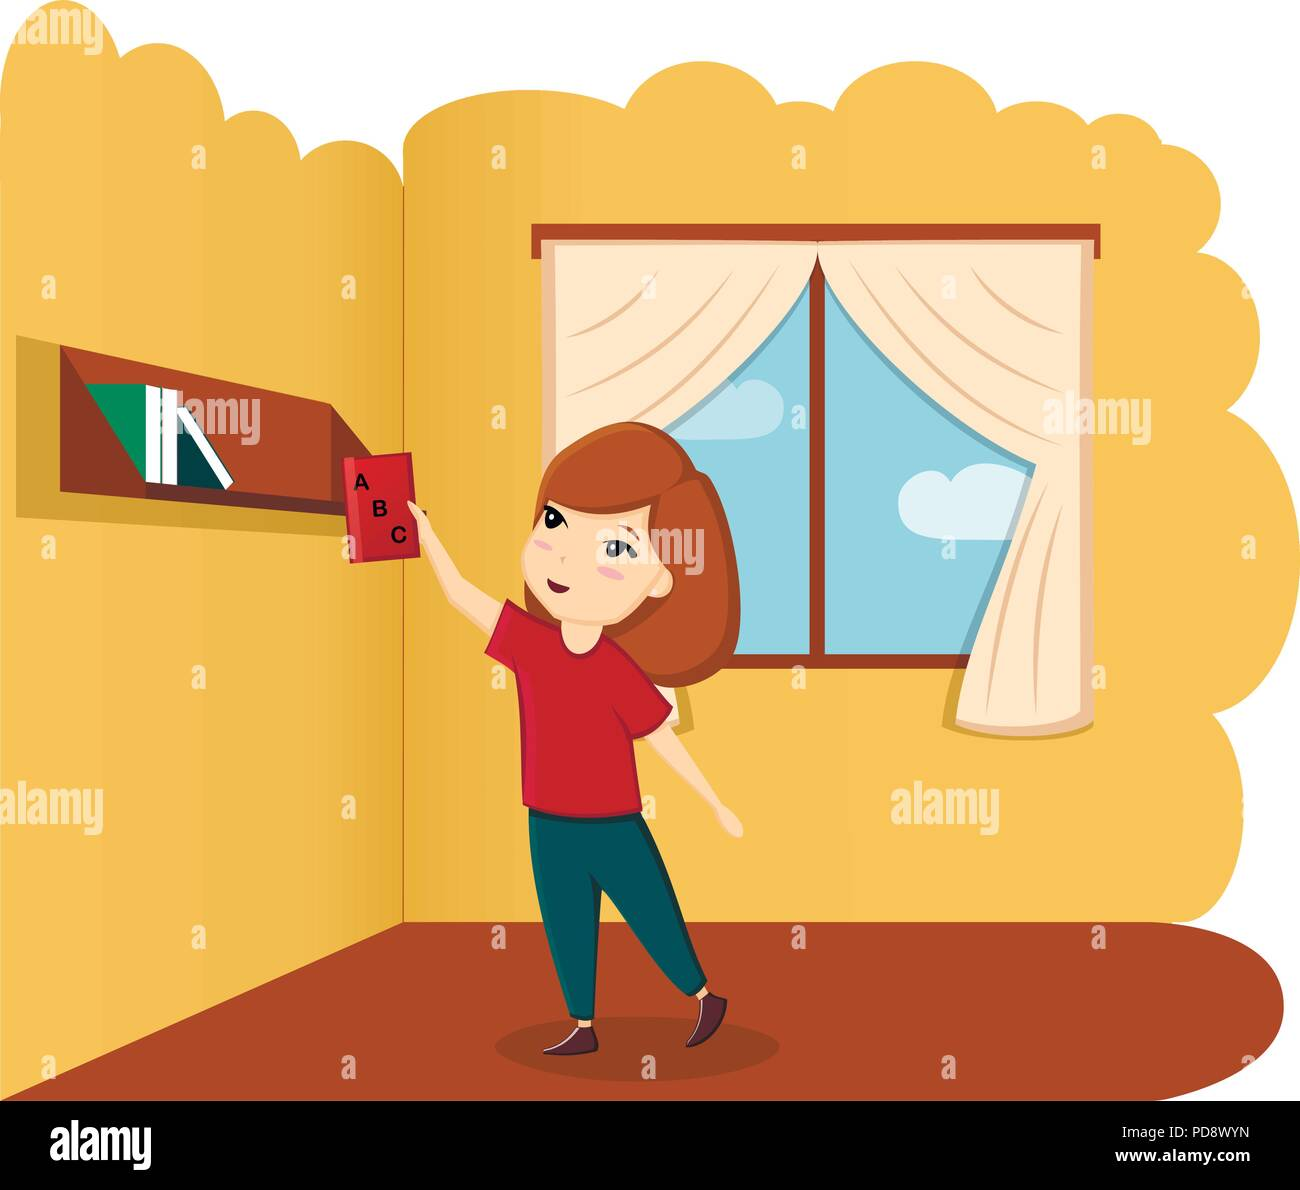 Girl with book in room, illustration, vector. A child with a book. First day of school, back to school - Stock Image